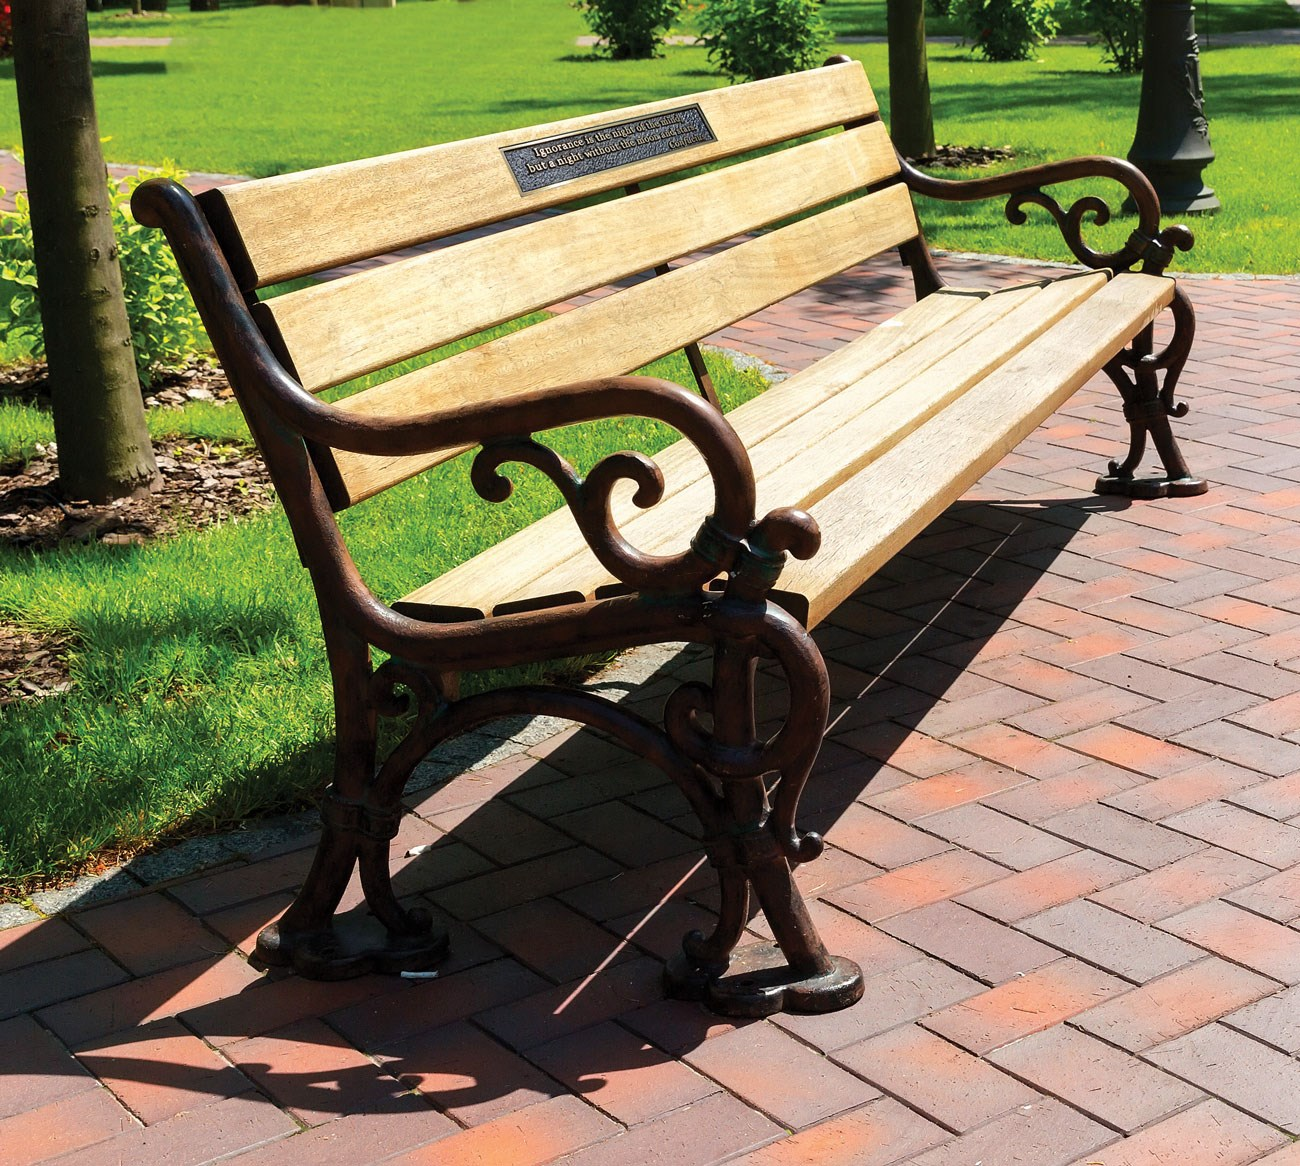 Bench affixed with notable quote